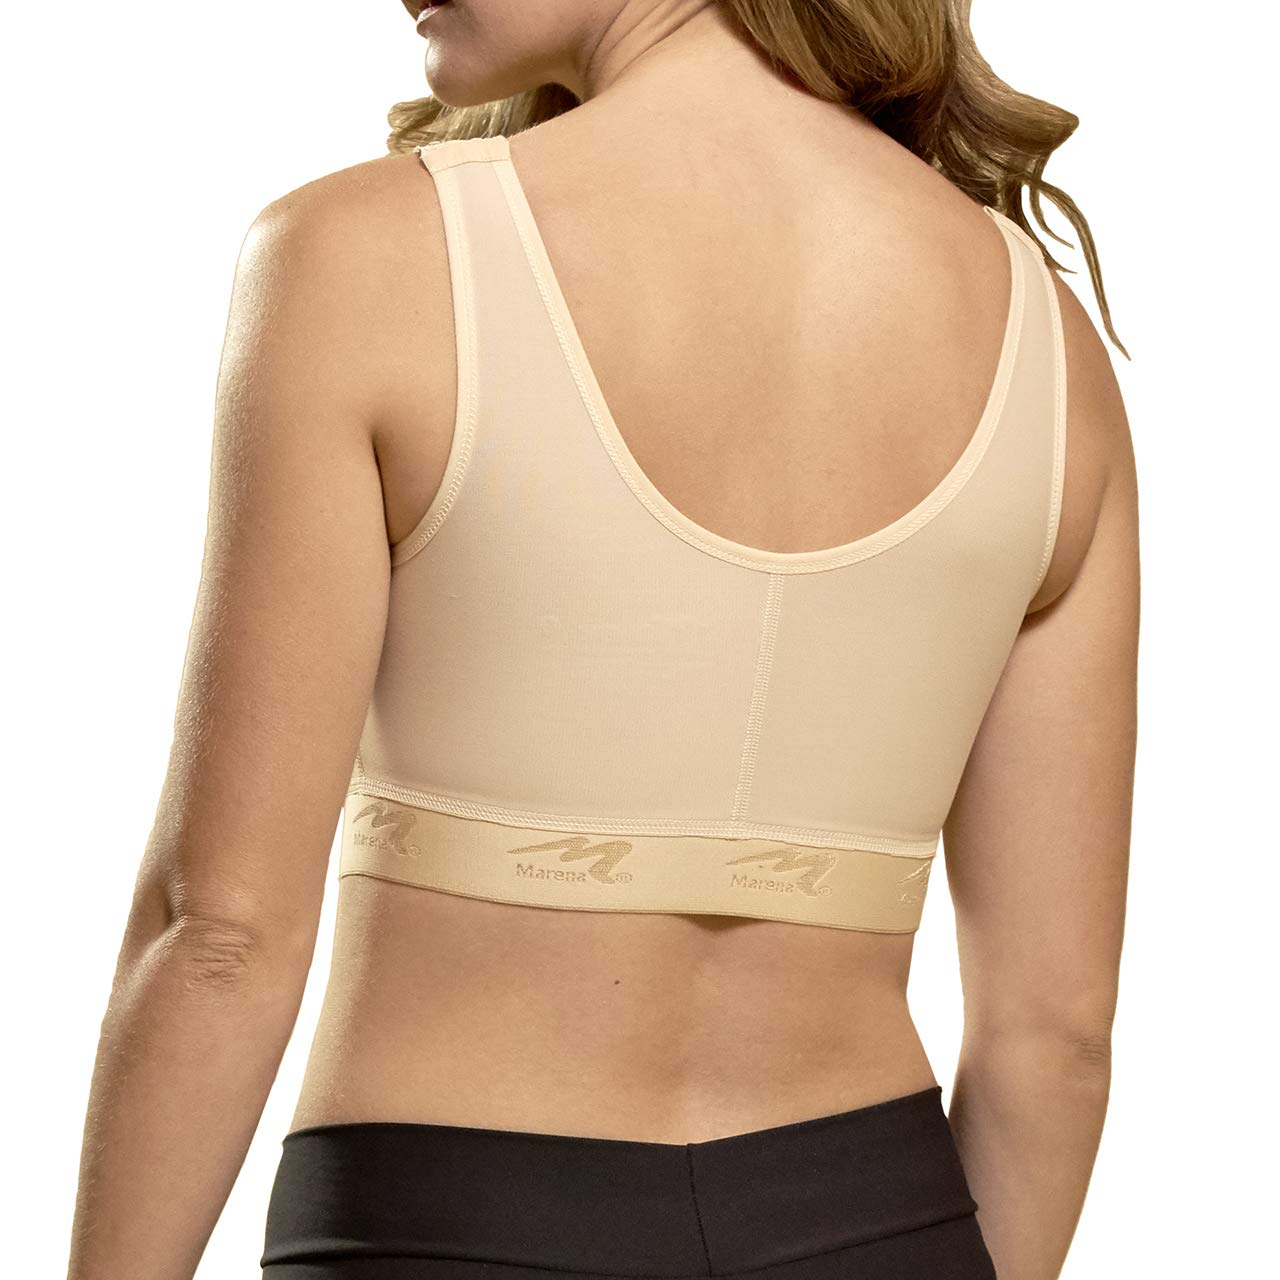 Marena Recovery Compression Bra with Implant Stabilizer Band for Post Surgery